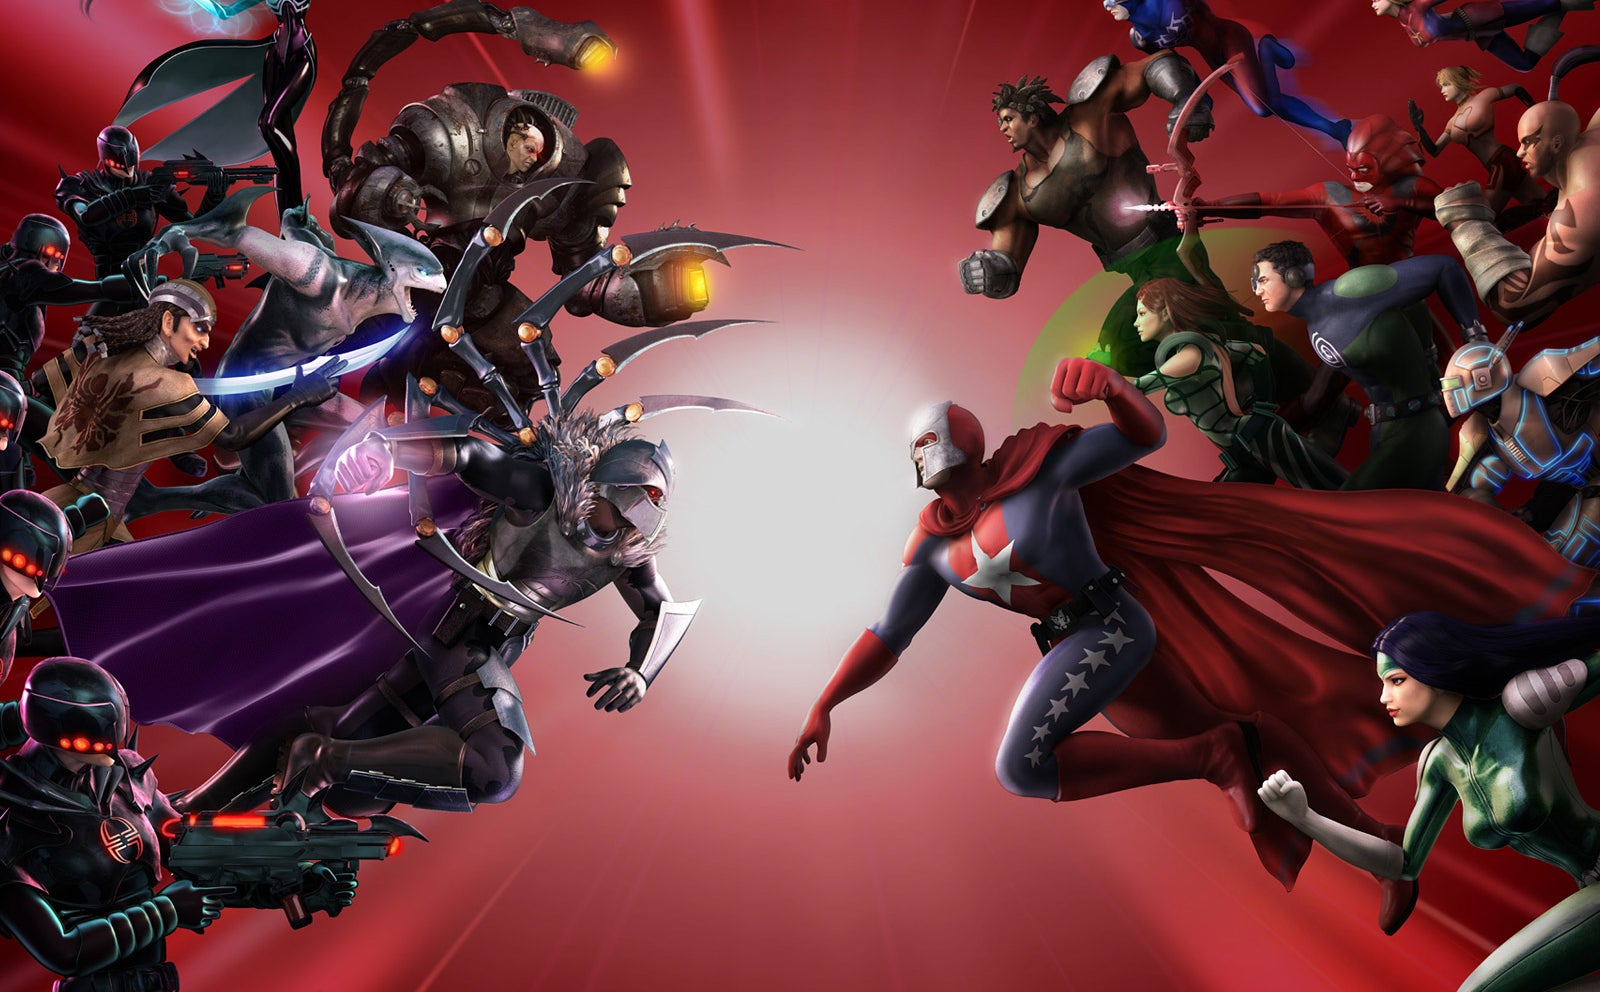 Discovery Of A Secret, Fan-Run City Of Heroes Server Causes A Community Meltdown